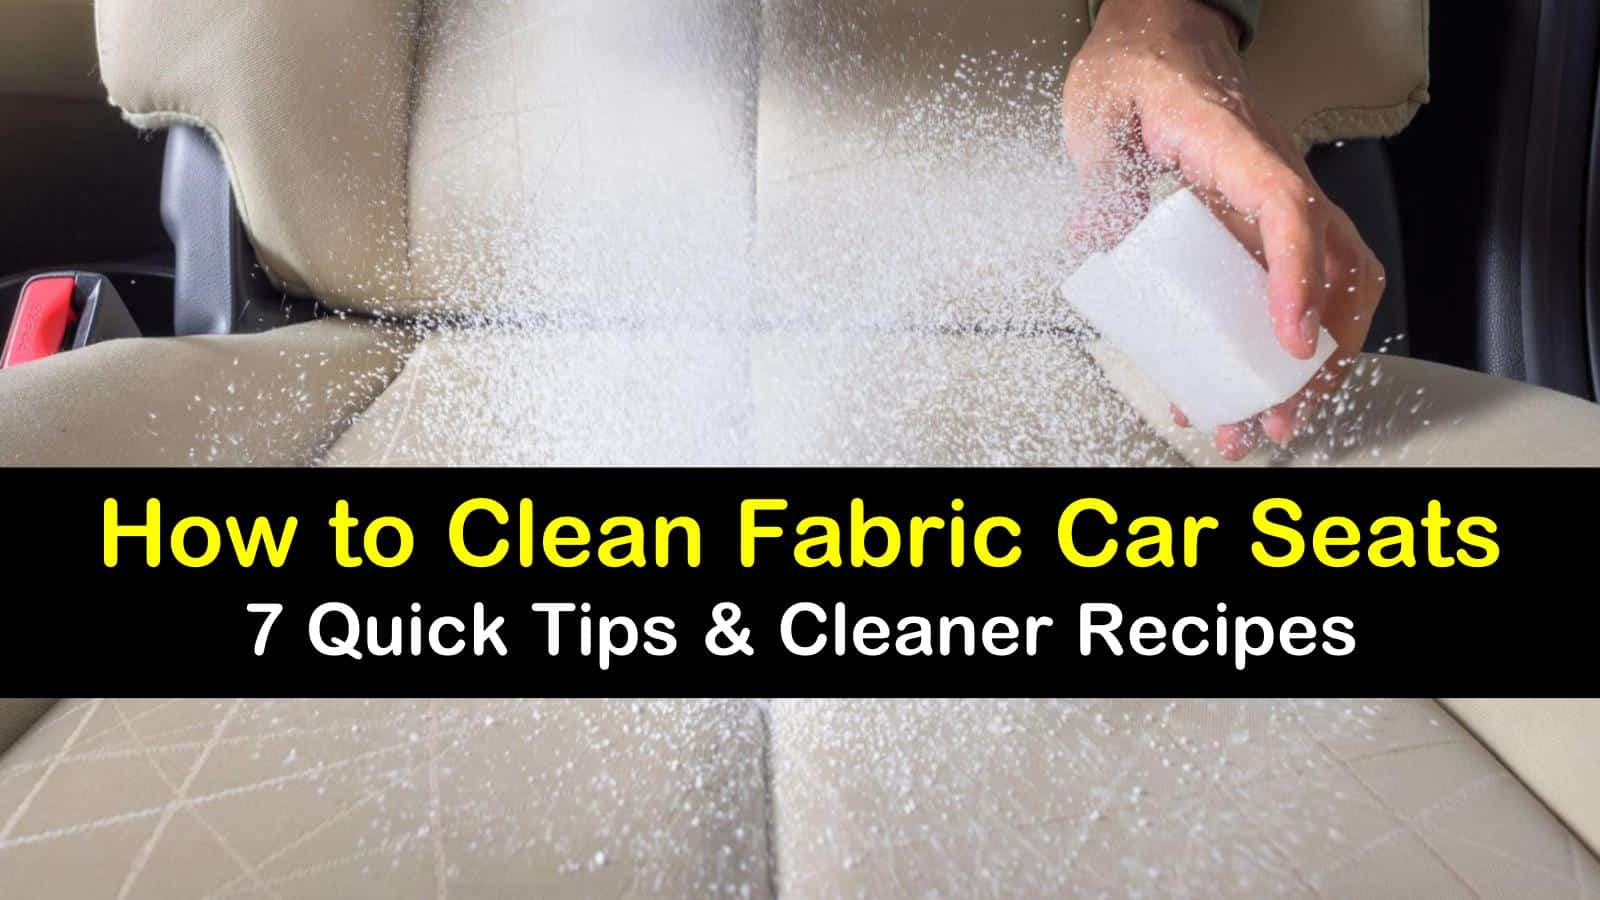 how to clean fabric car seats titleimg1